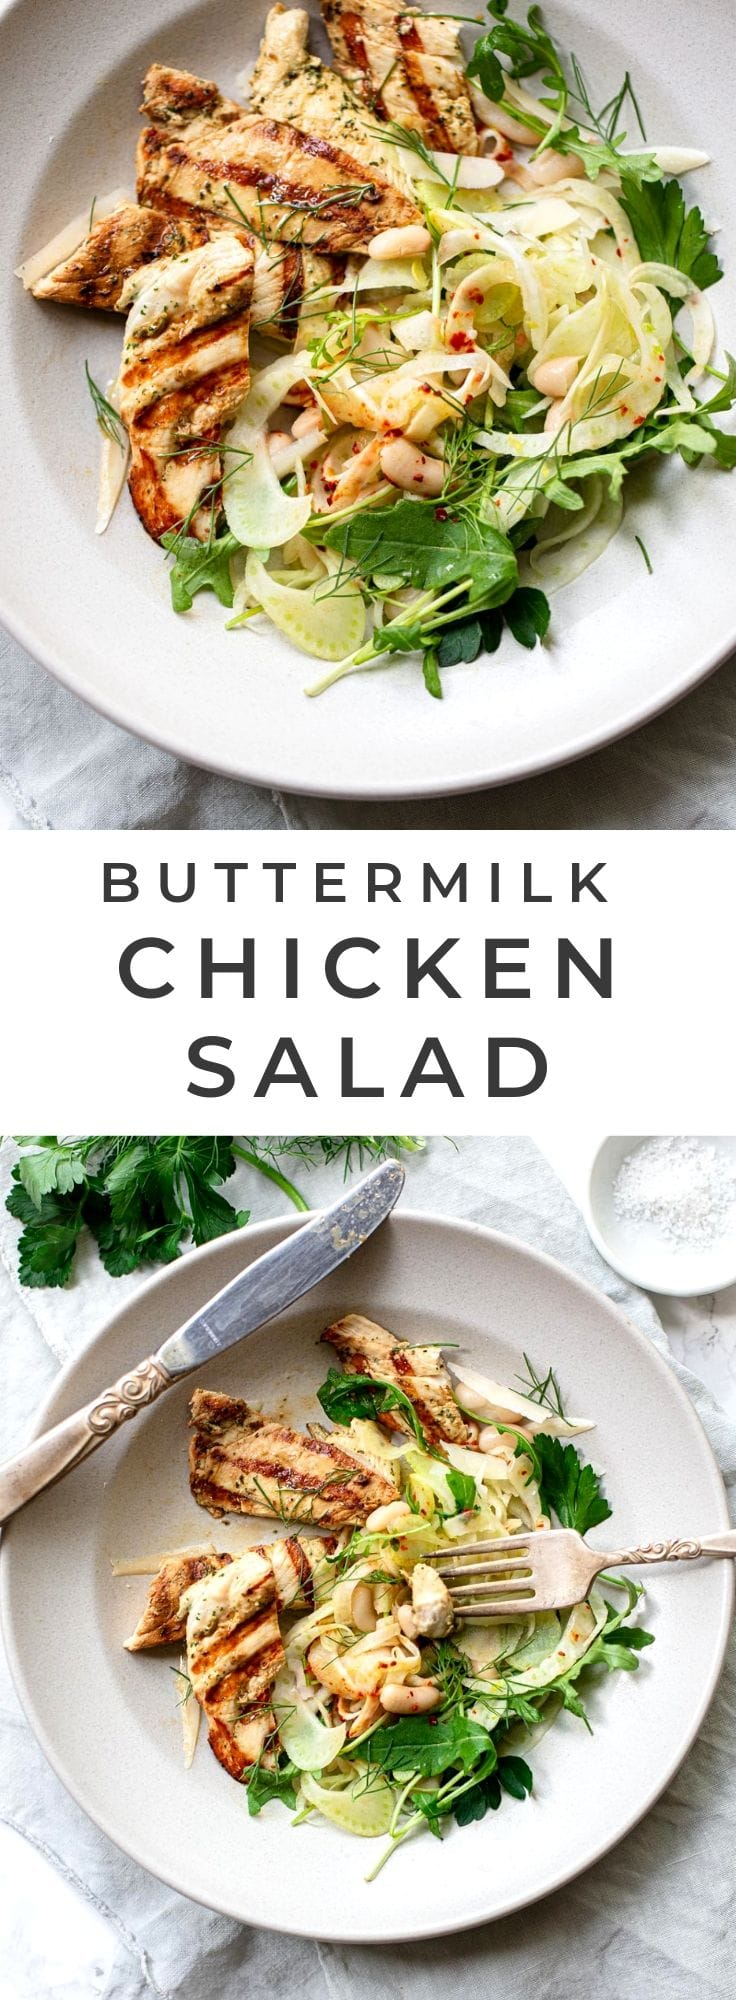 Grilled Buttermilk Chicken Breast with Fennel Salad: Fresh, easy low-carb and gluten-free meal on one plate.